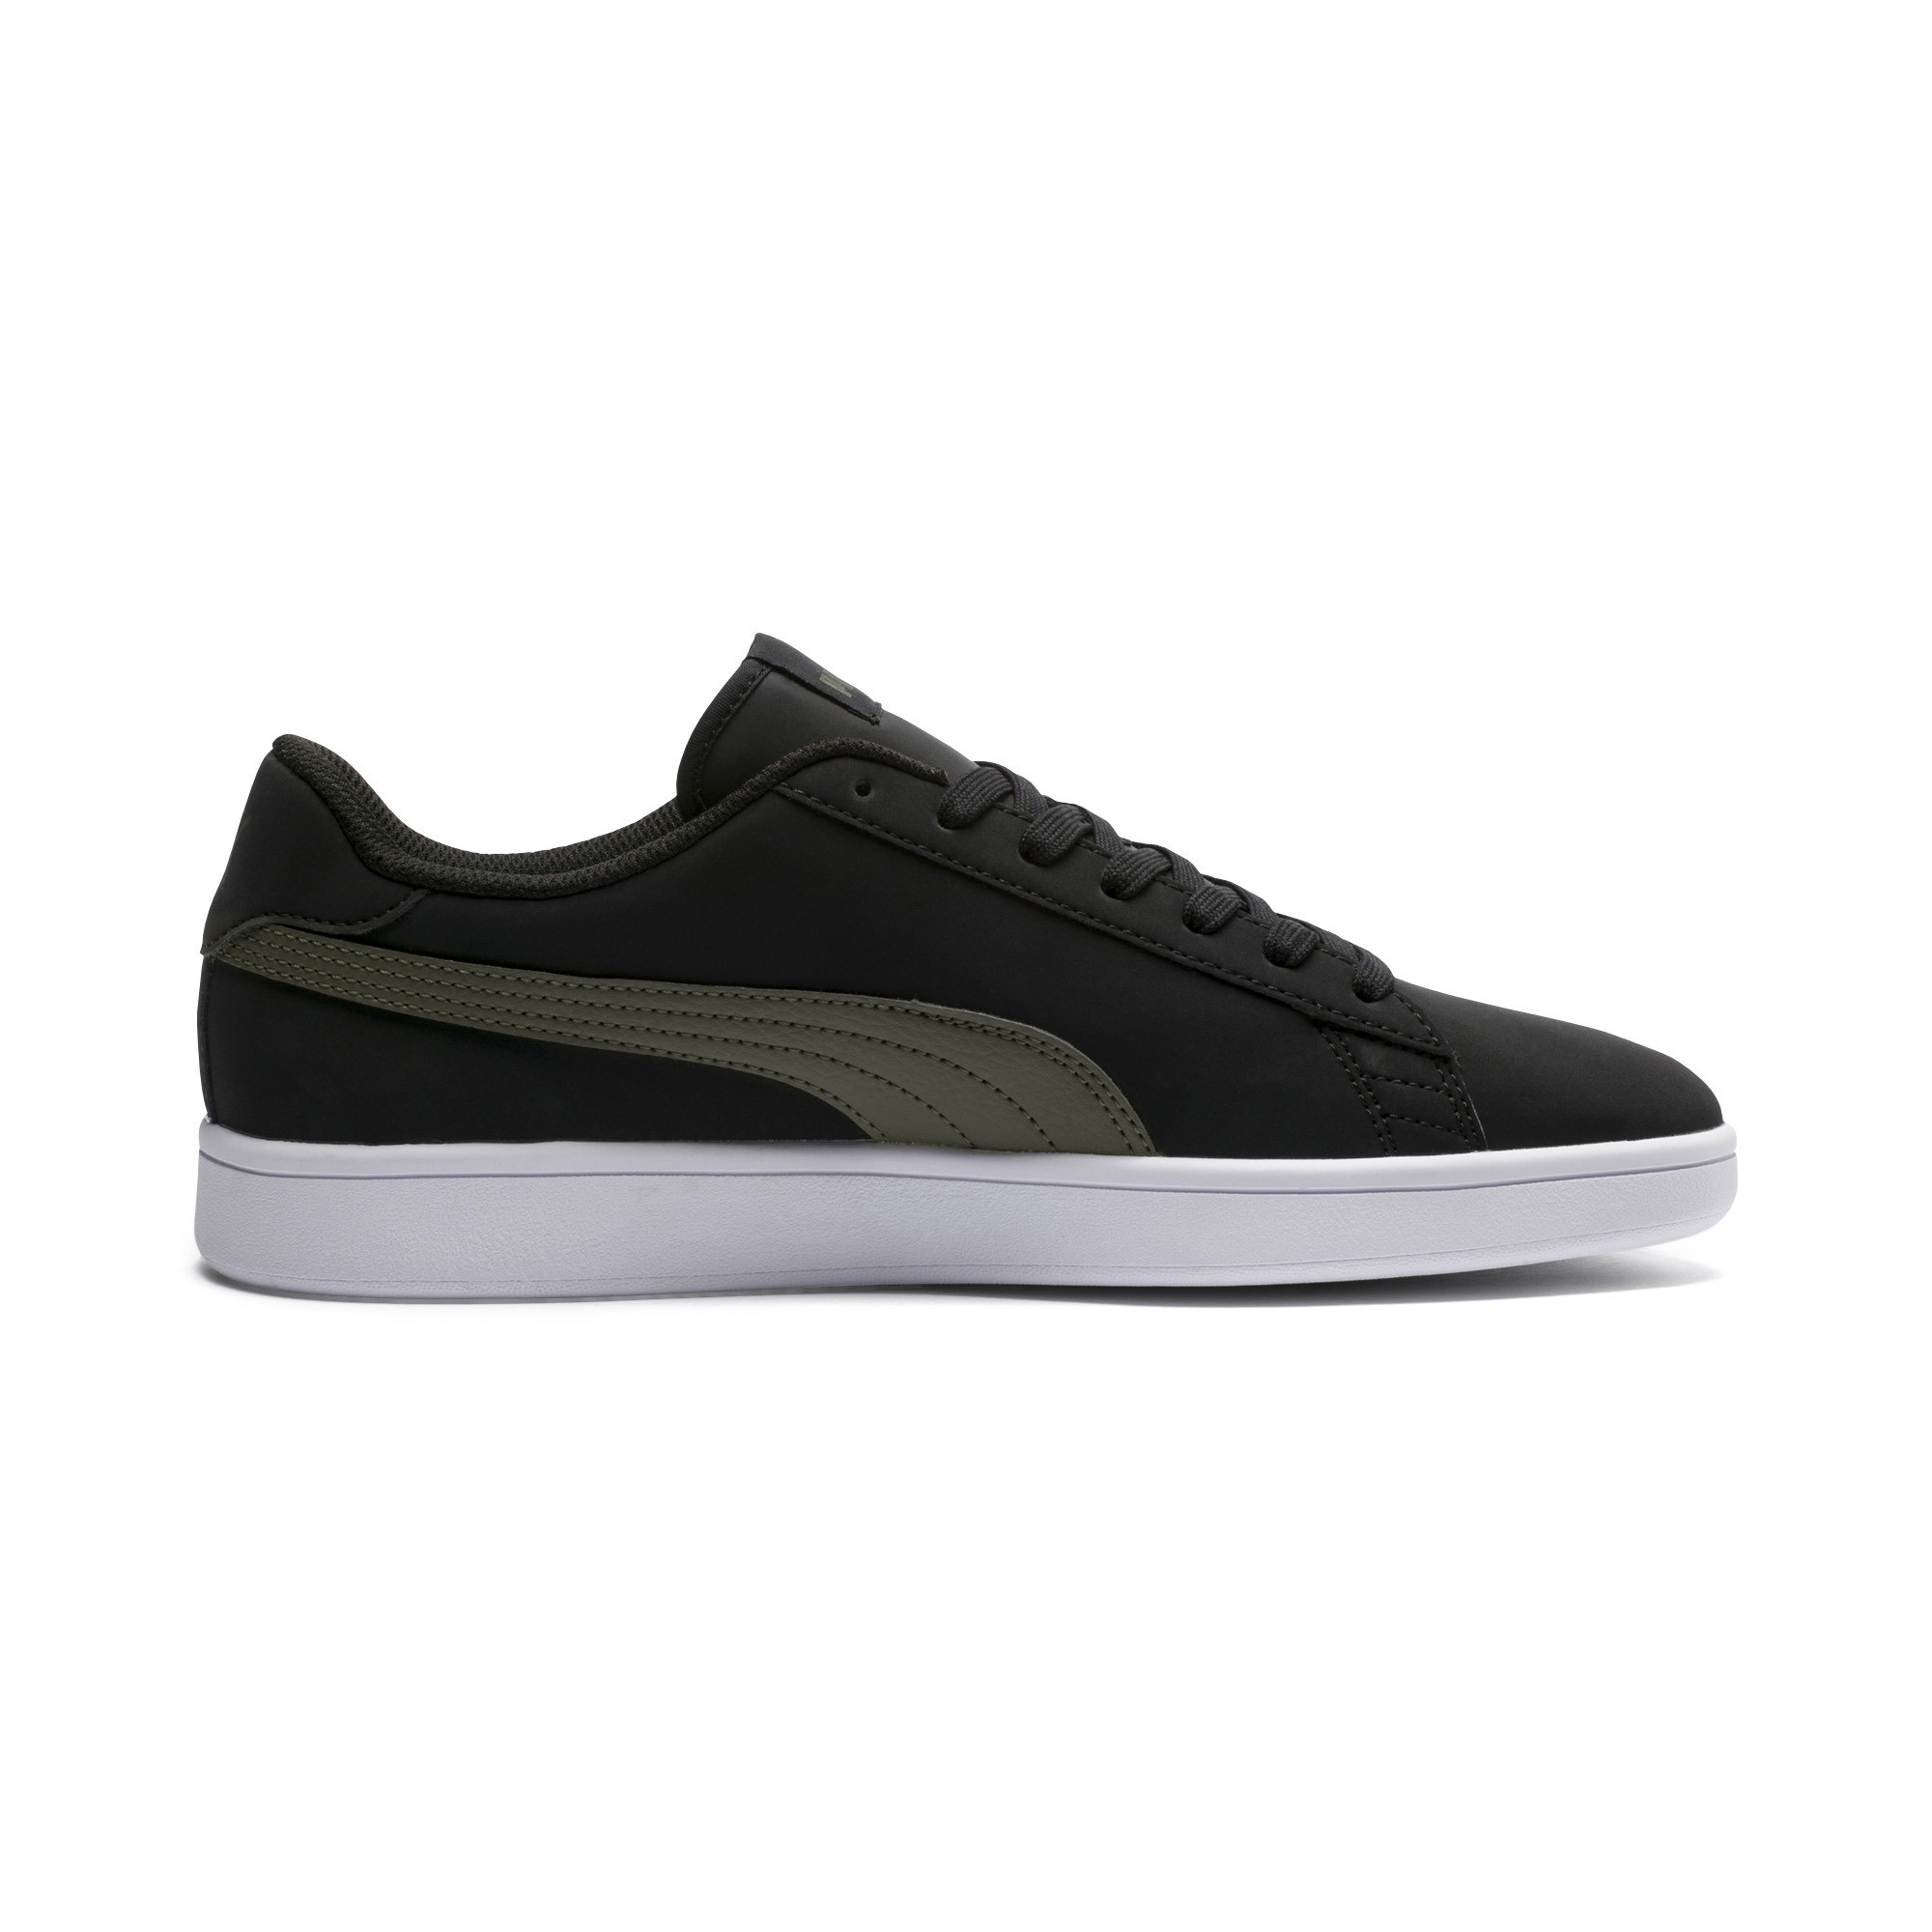 PUMA-PUMA-Smash-v2-Nubuck-Men-039-s-Sneakers-Men-Shoe-Basics thumbnail 6